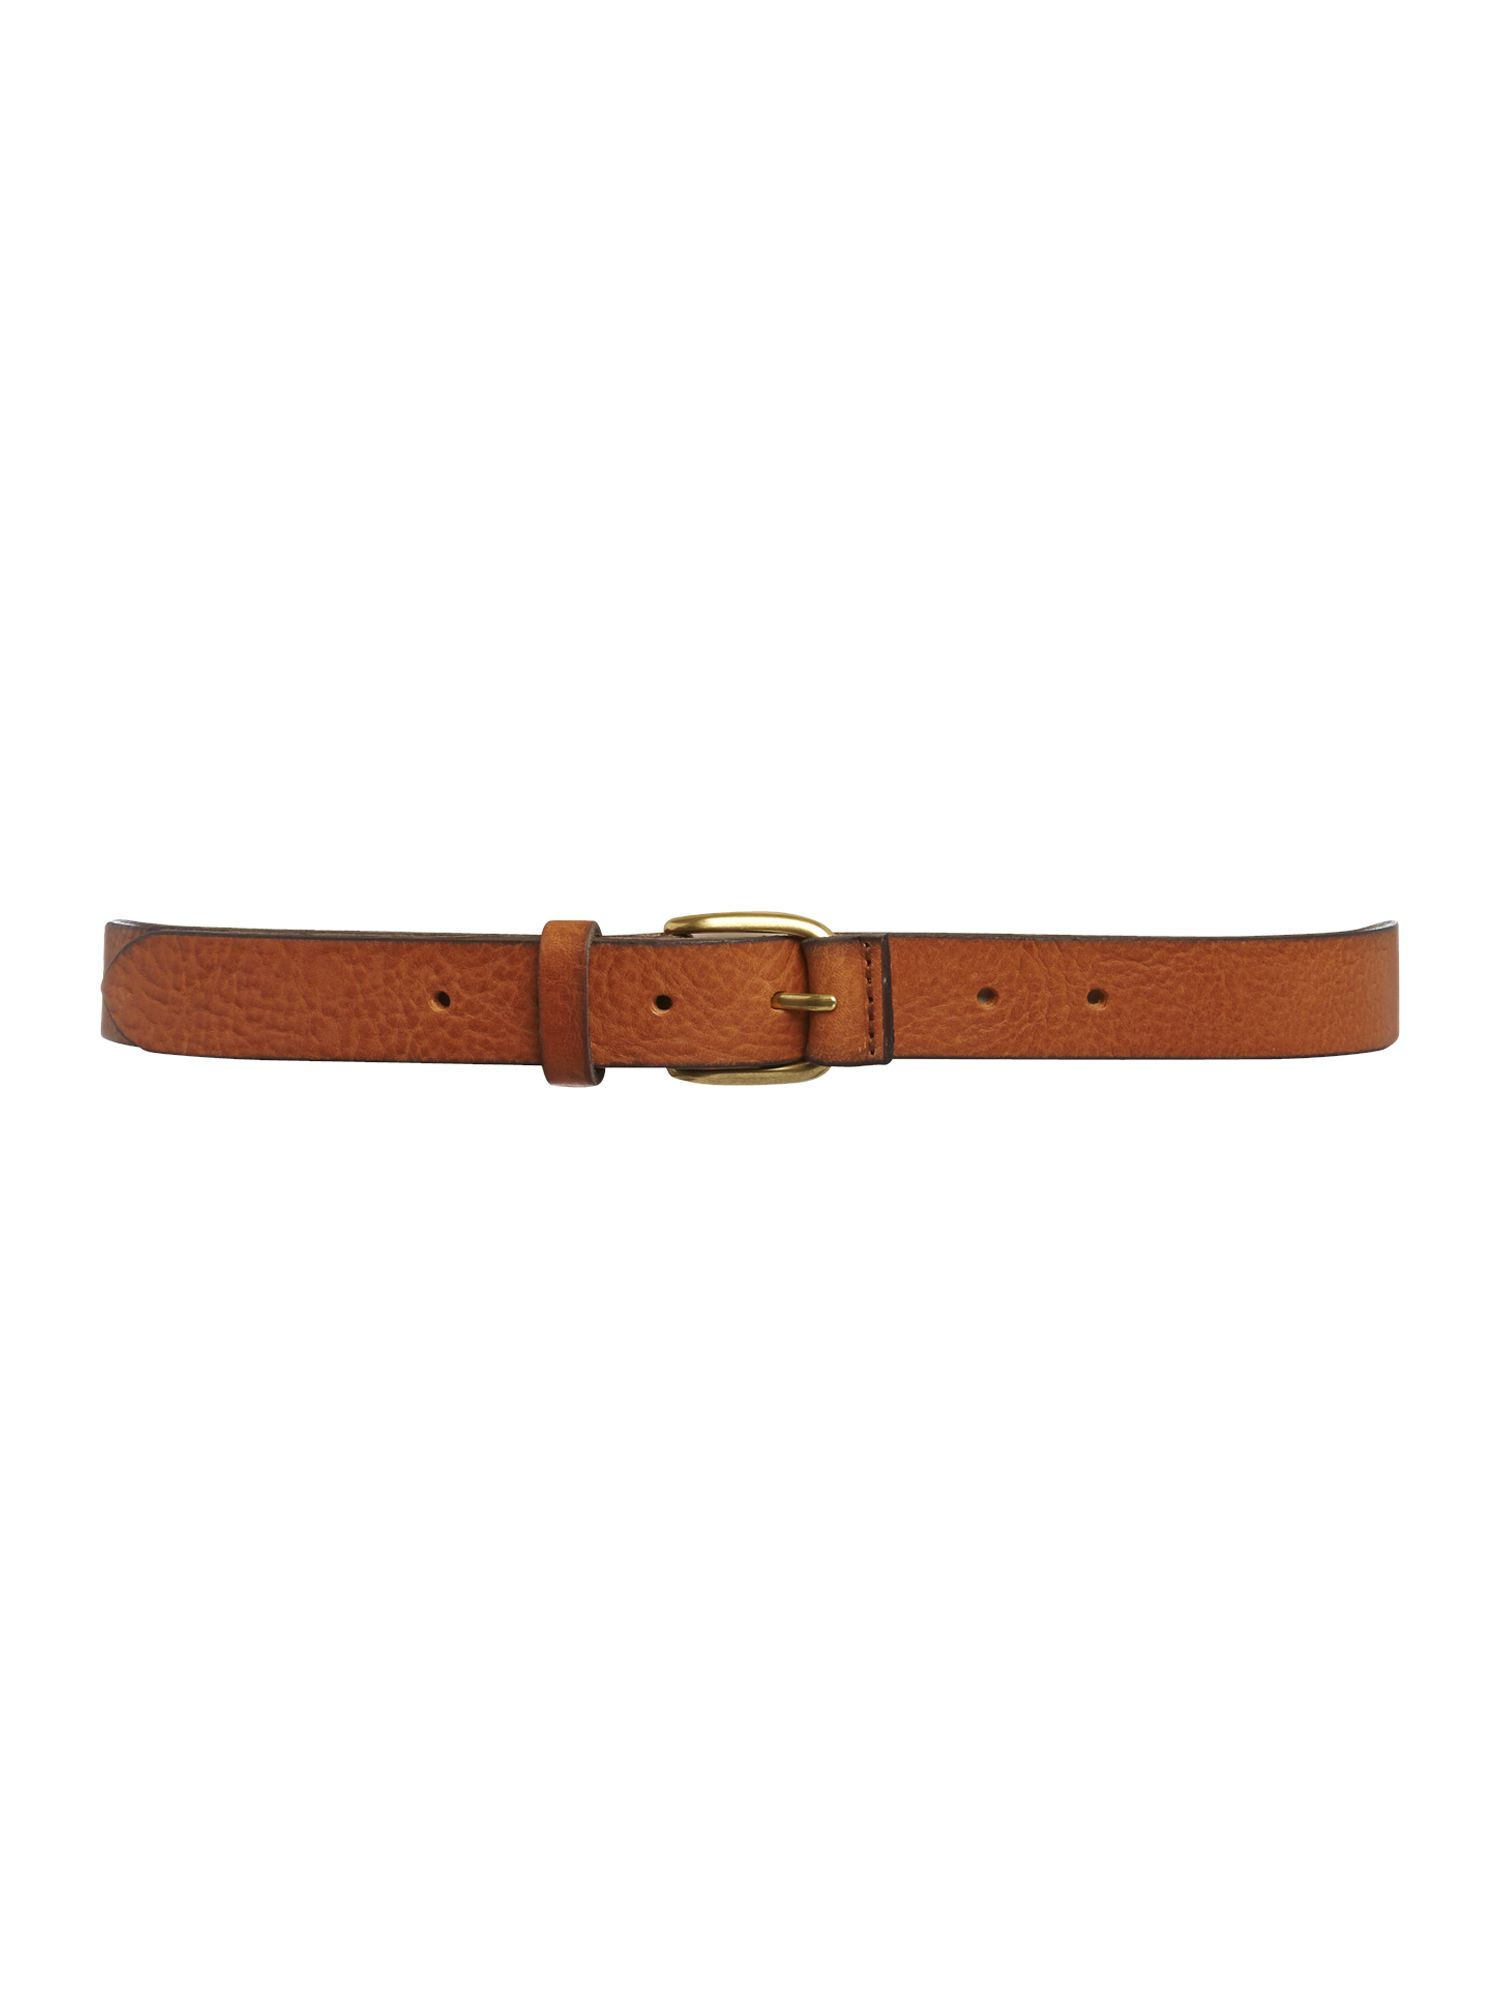 Casual trouser belt